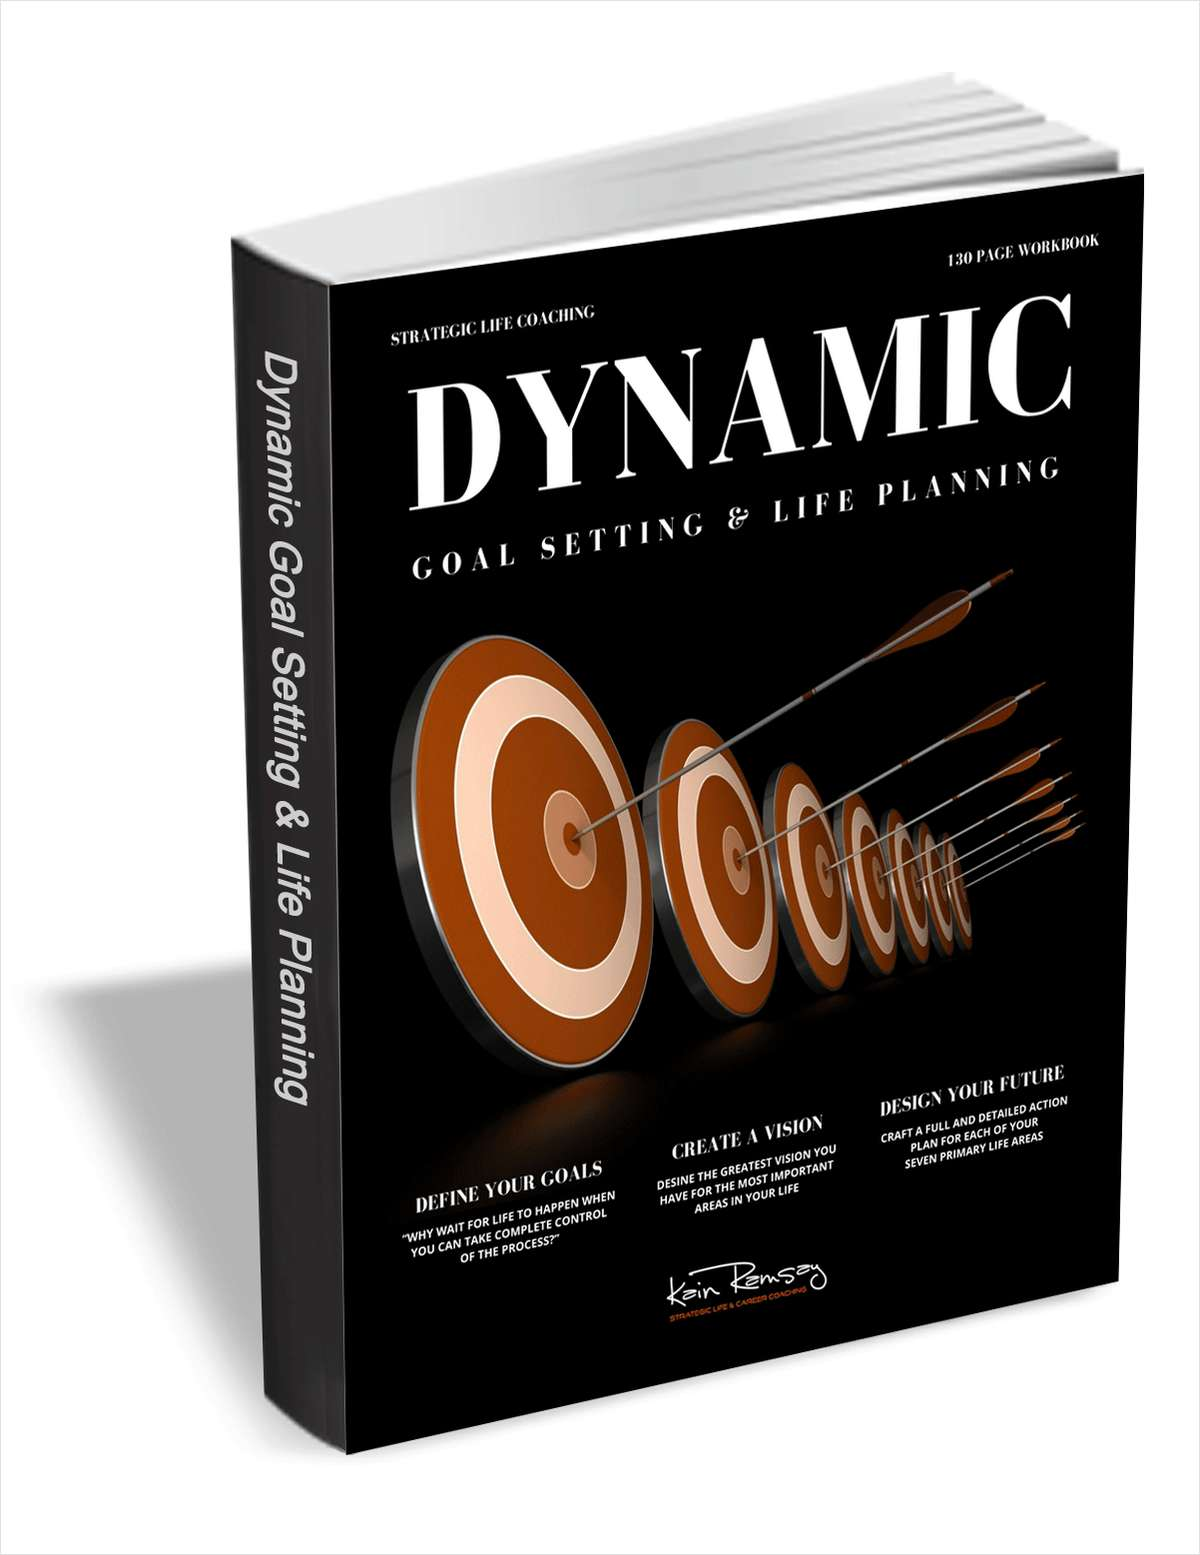 Dynamic Goal Setting & Life Planning